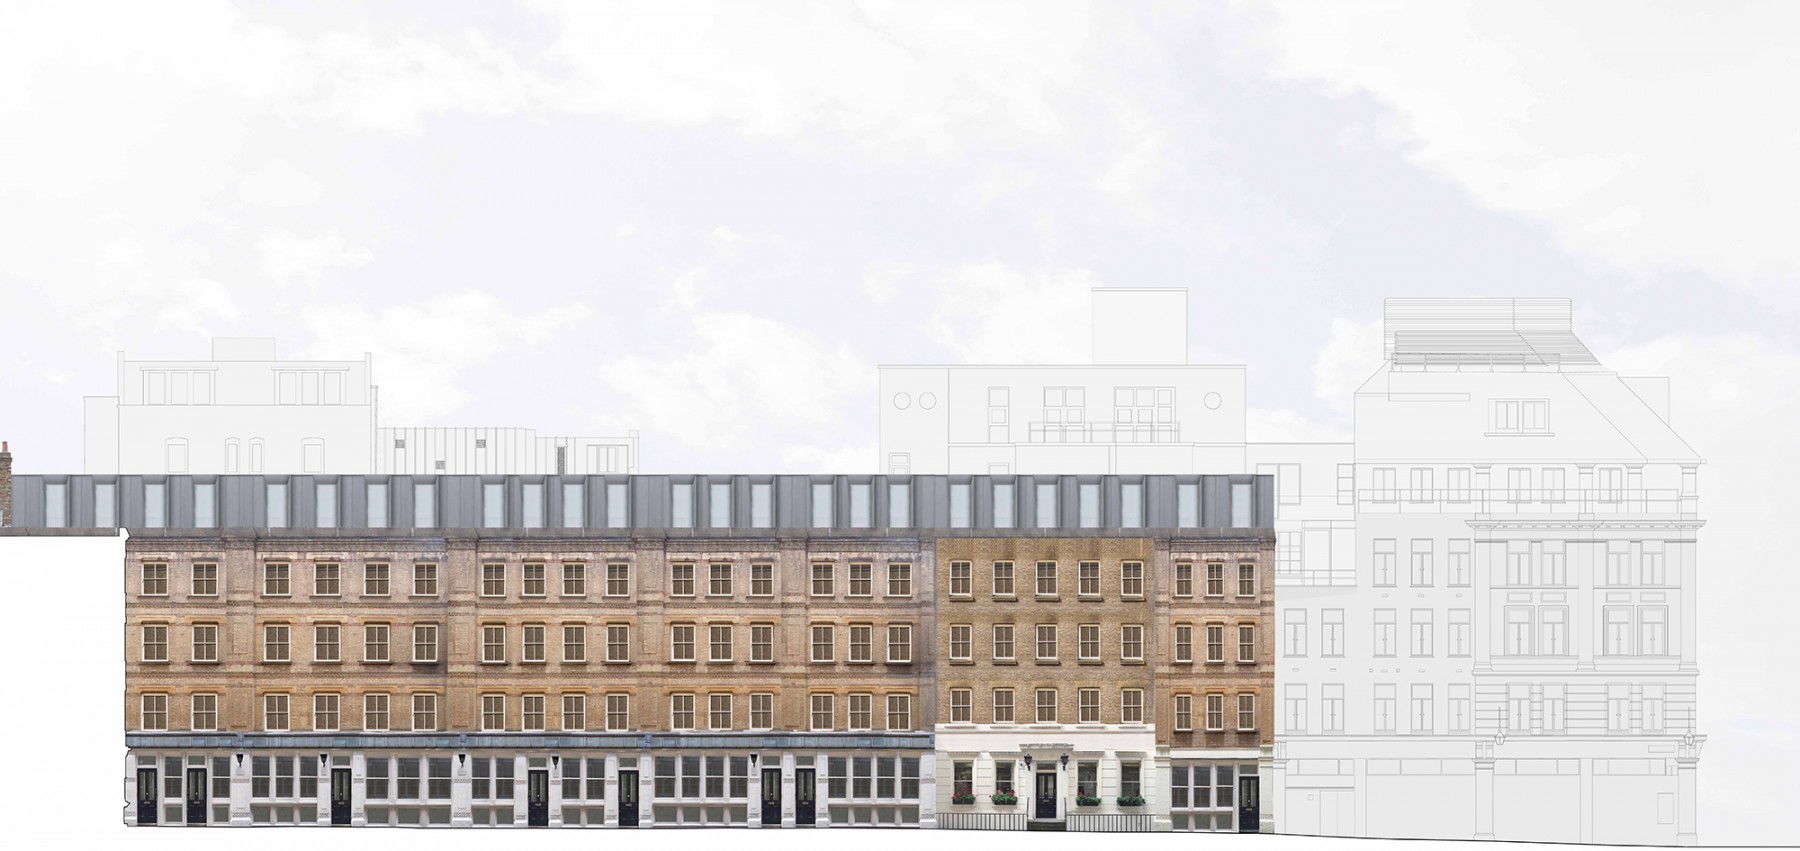 Dyers-Buildings-Private-Gated-Victorian-luxury-apartment-scheme-Residential-Development-Holborn-London-Jamie-Fobert-Architects-west-elevation-1-sm